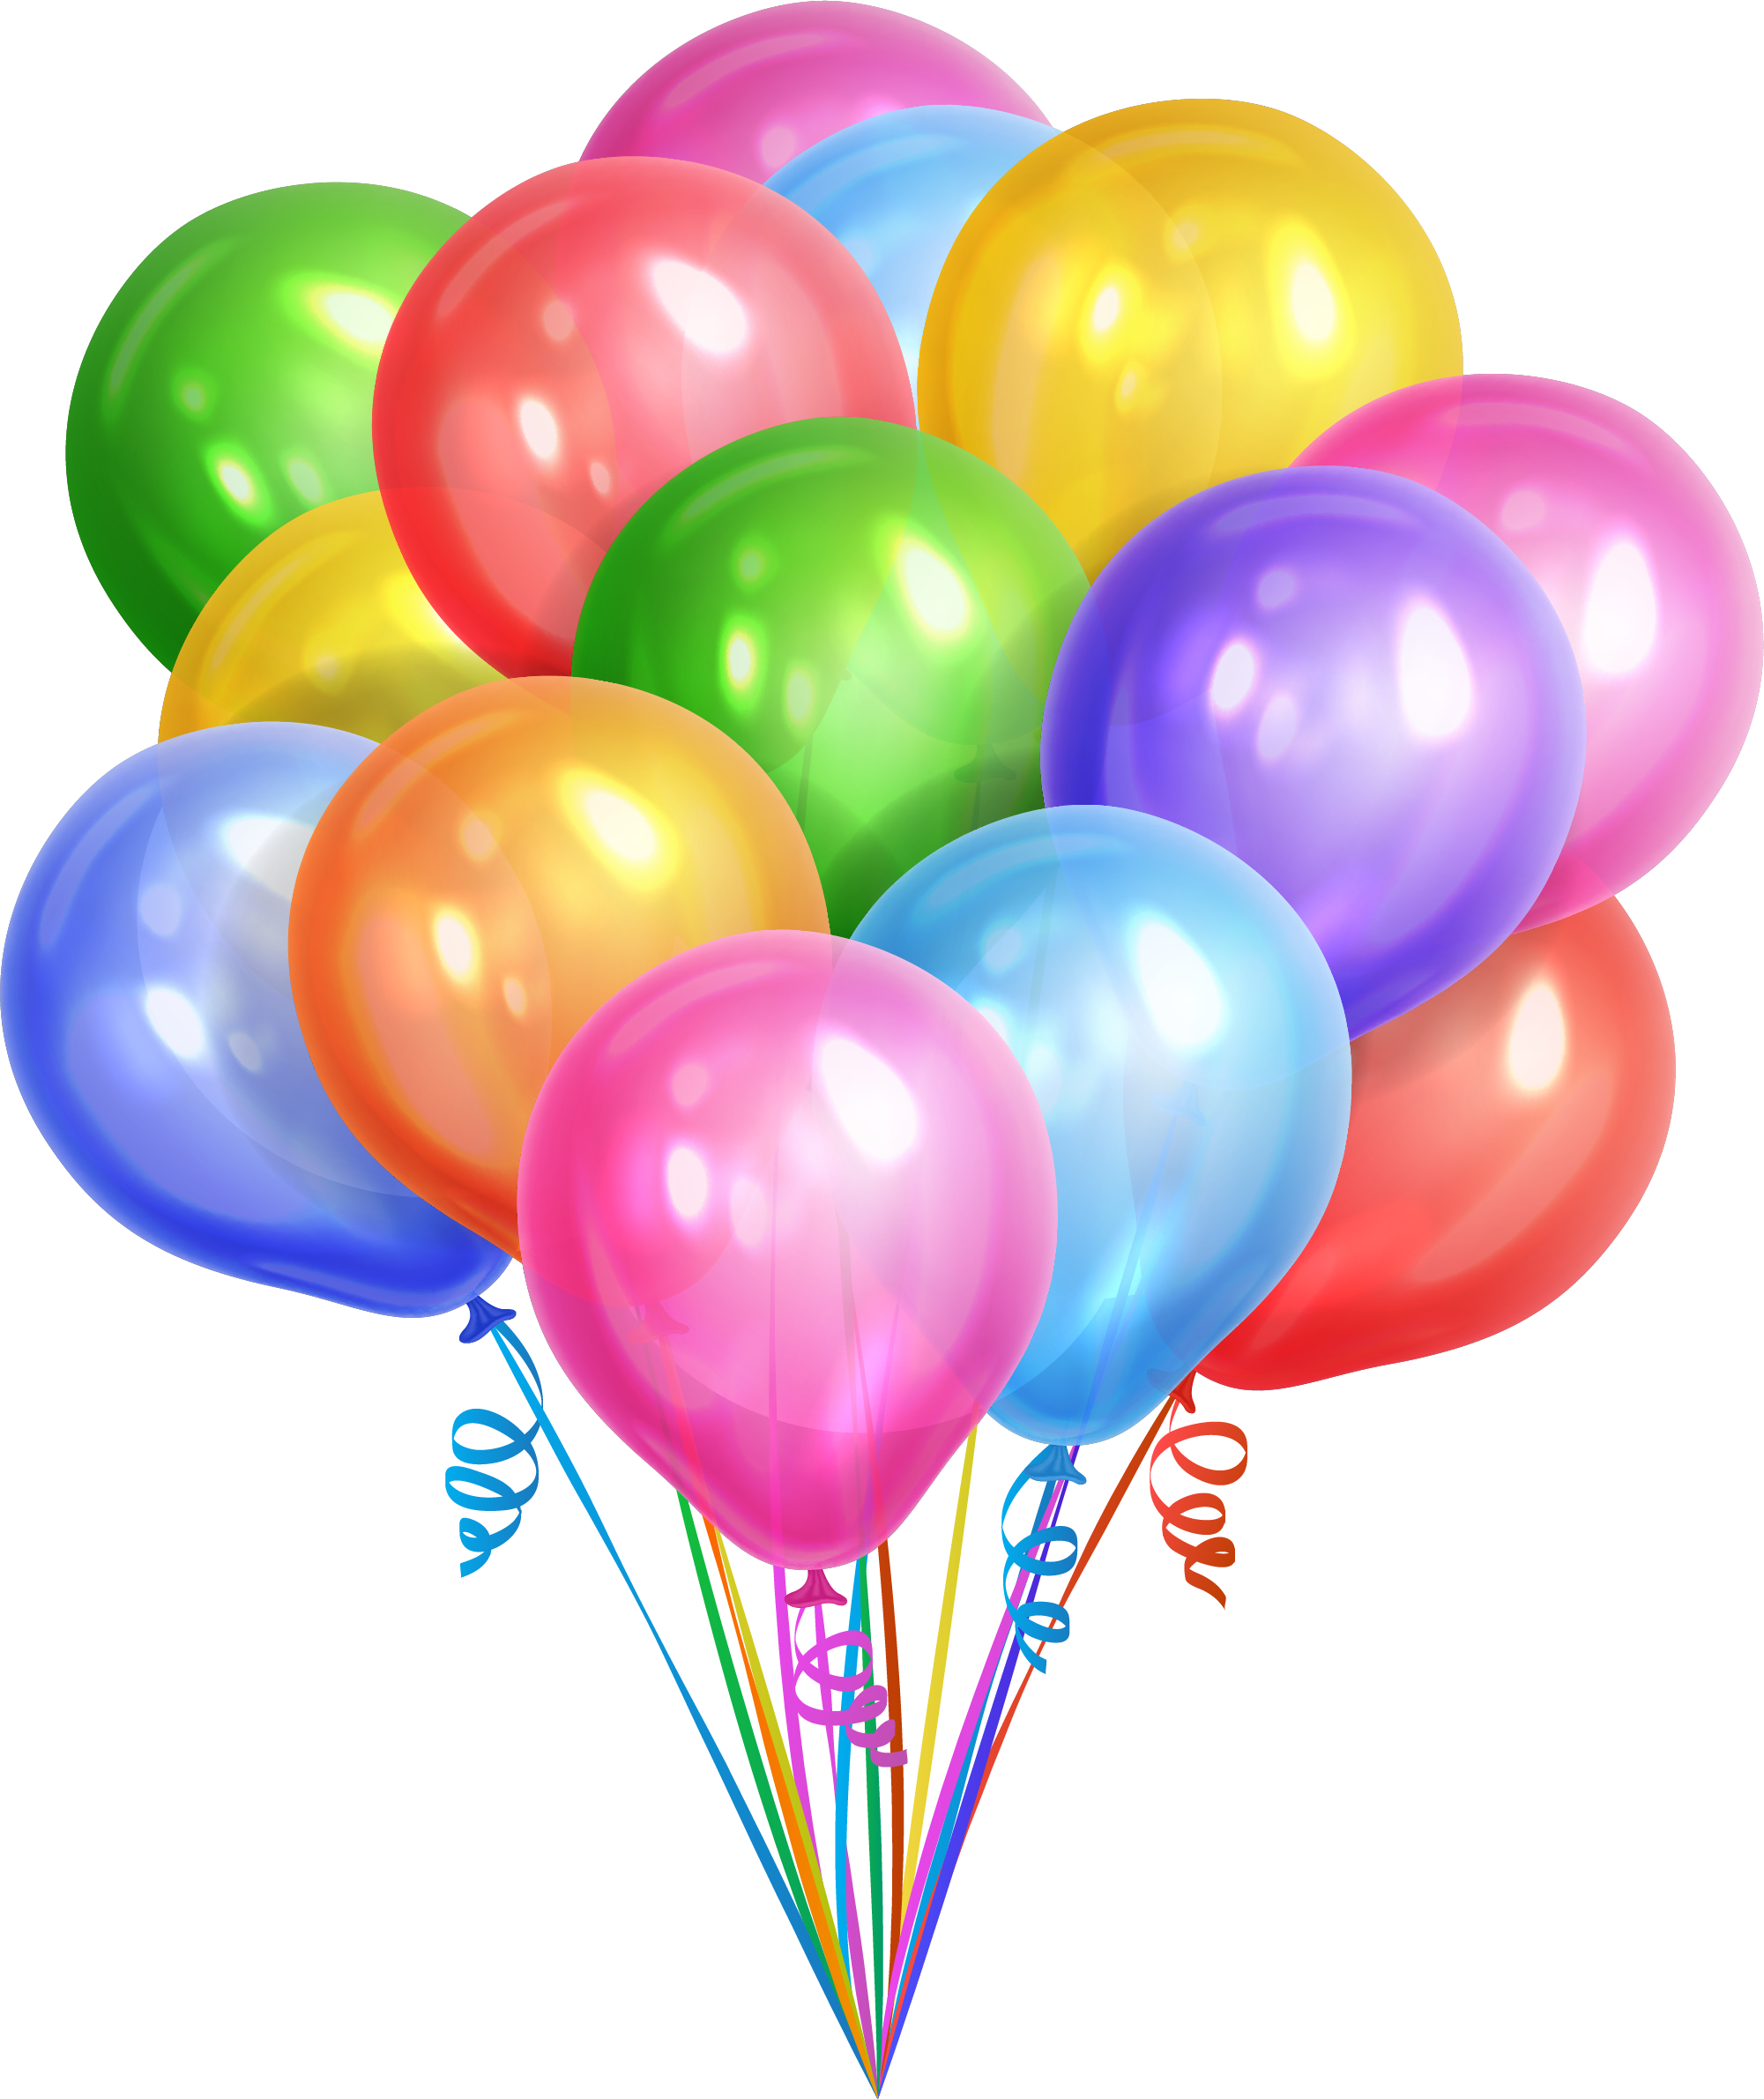 Ballon drawing balloon cluster. Colorful dream balloons transprent